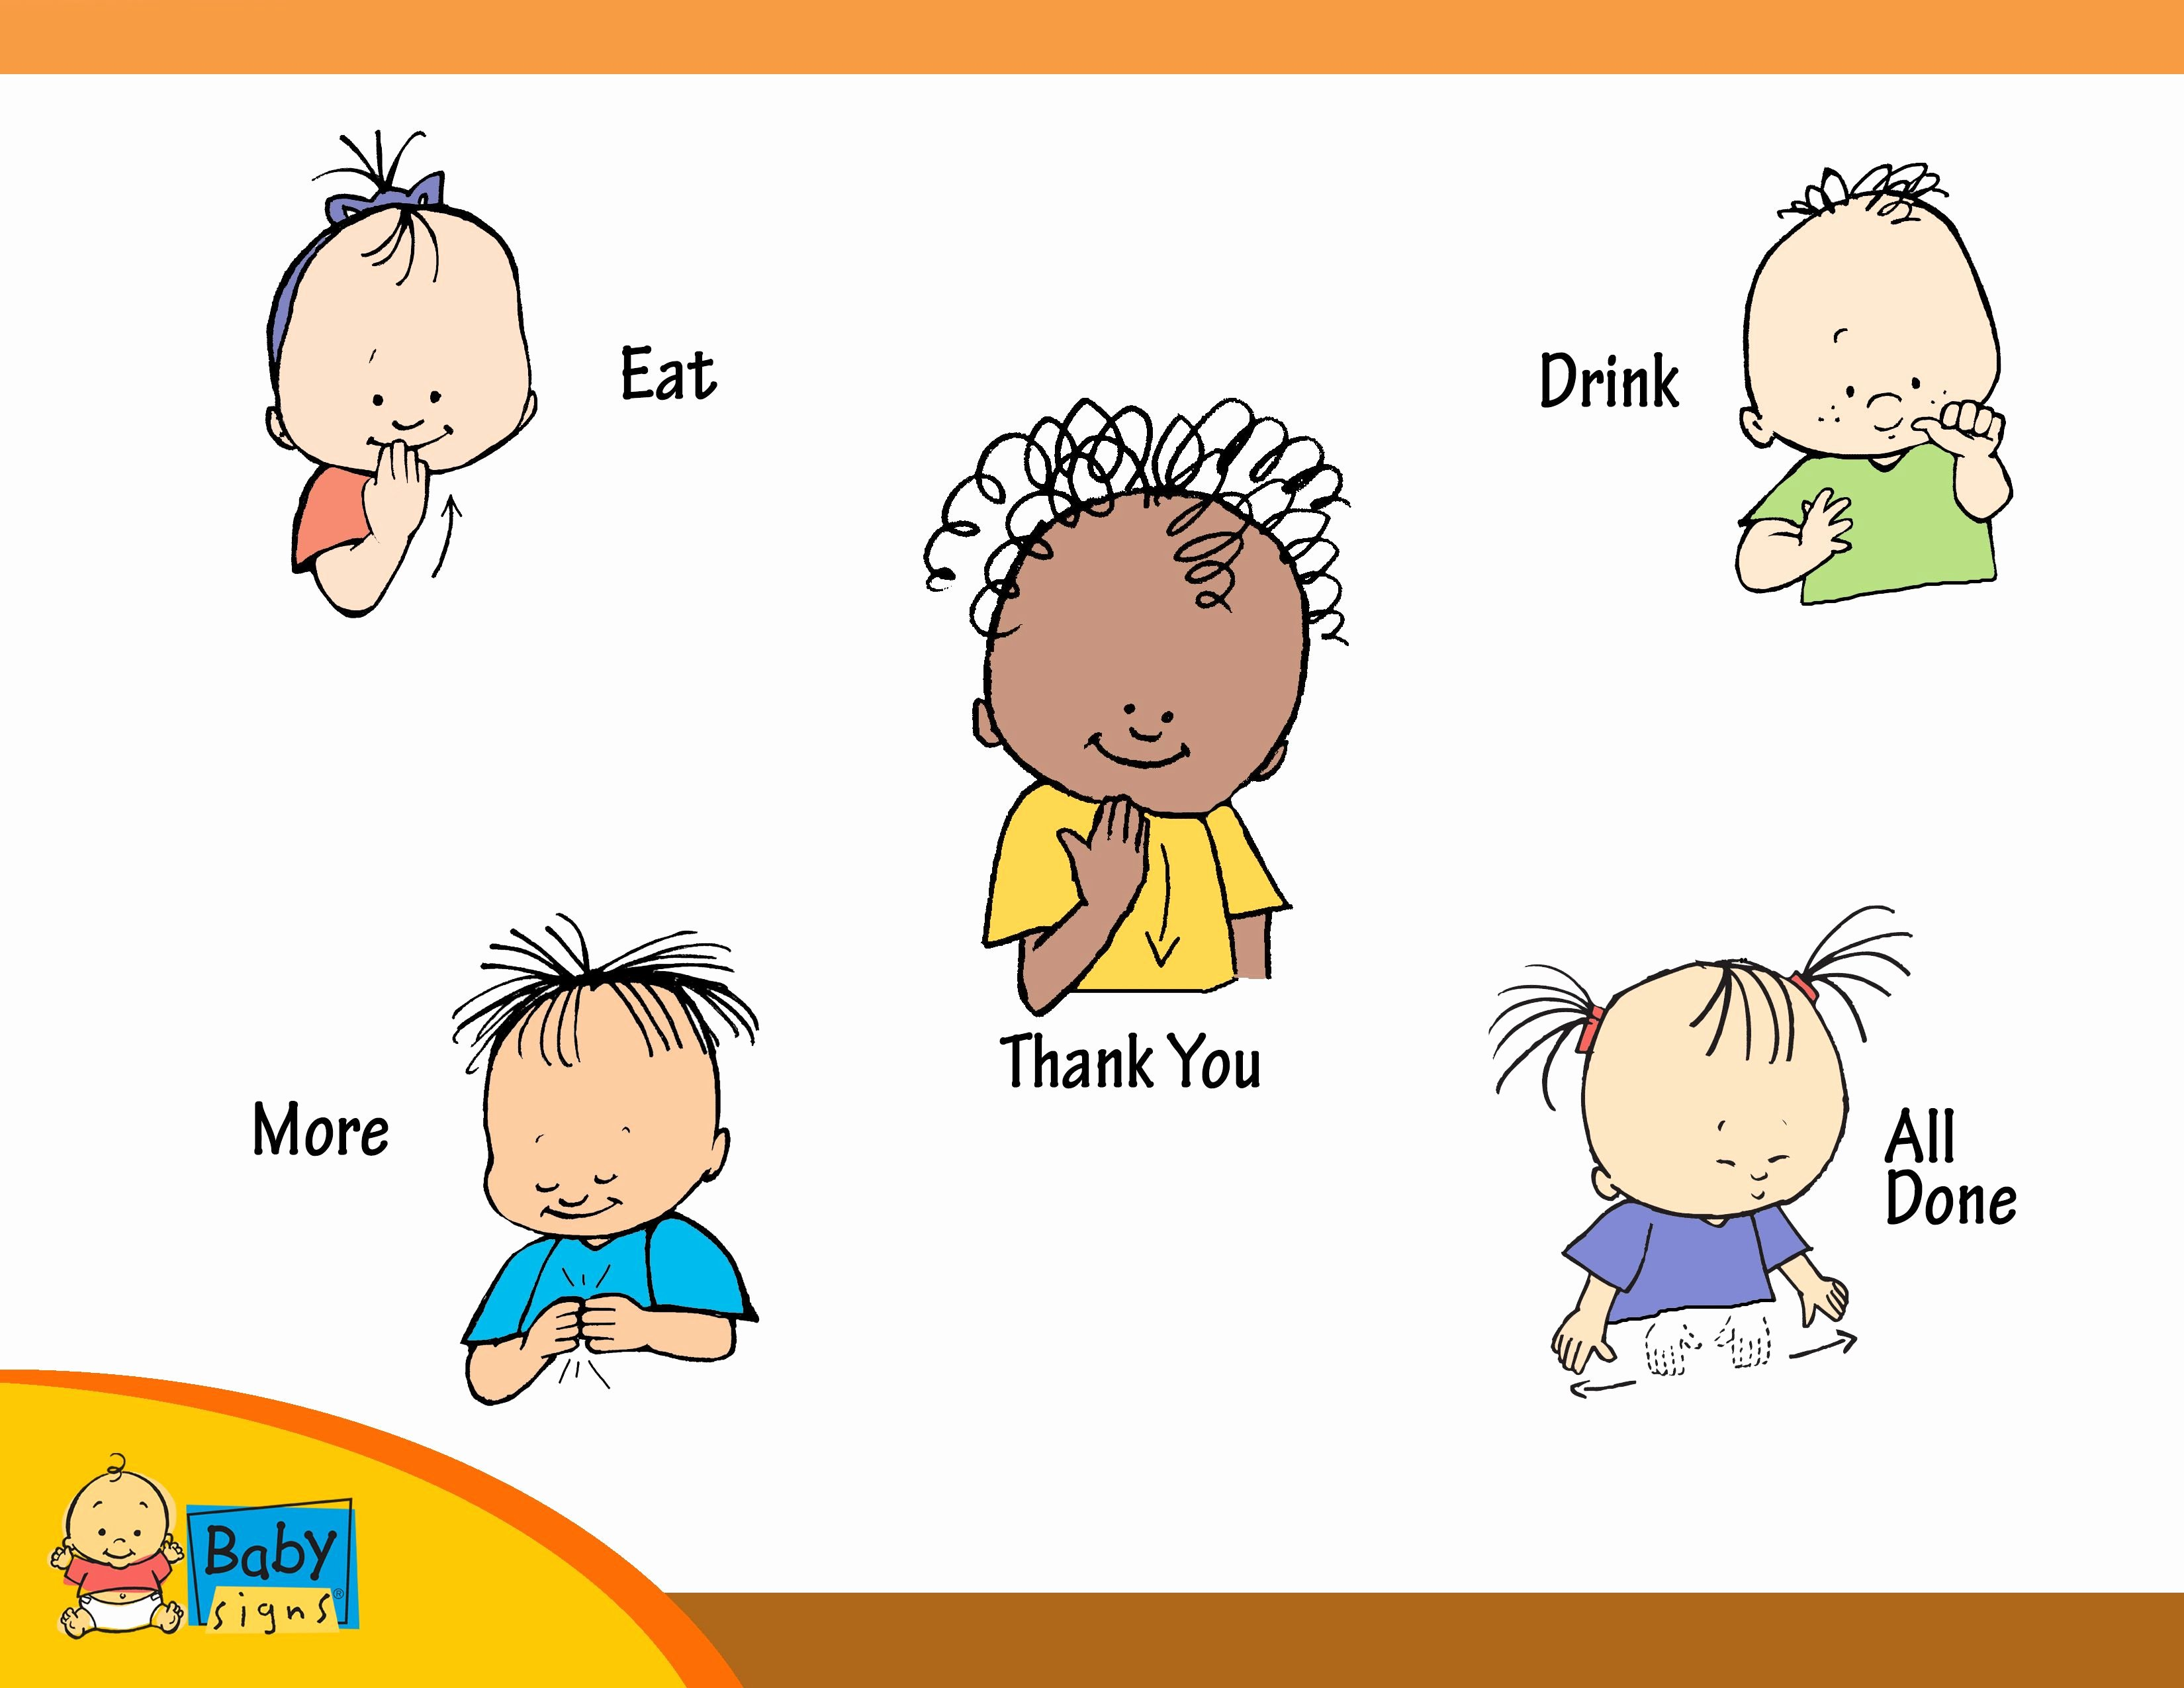 Baby Sign Language Posters Fresh Holiday Placemat Poster with Signs for Eat Drink Thank